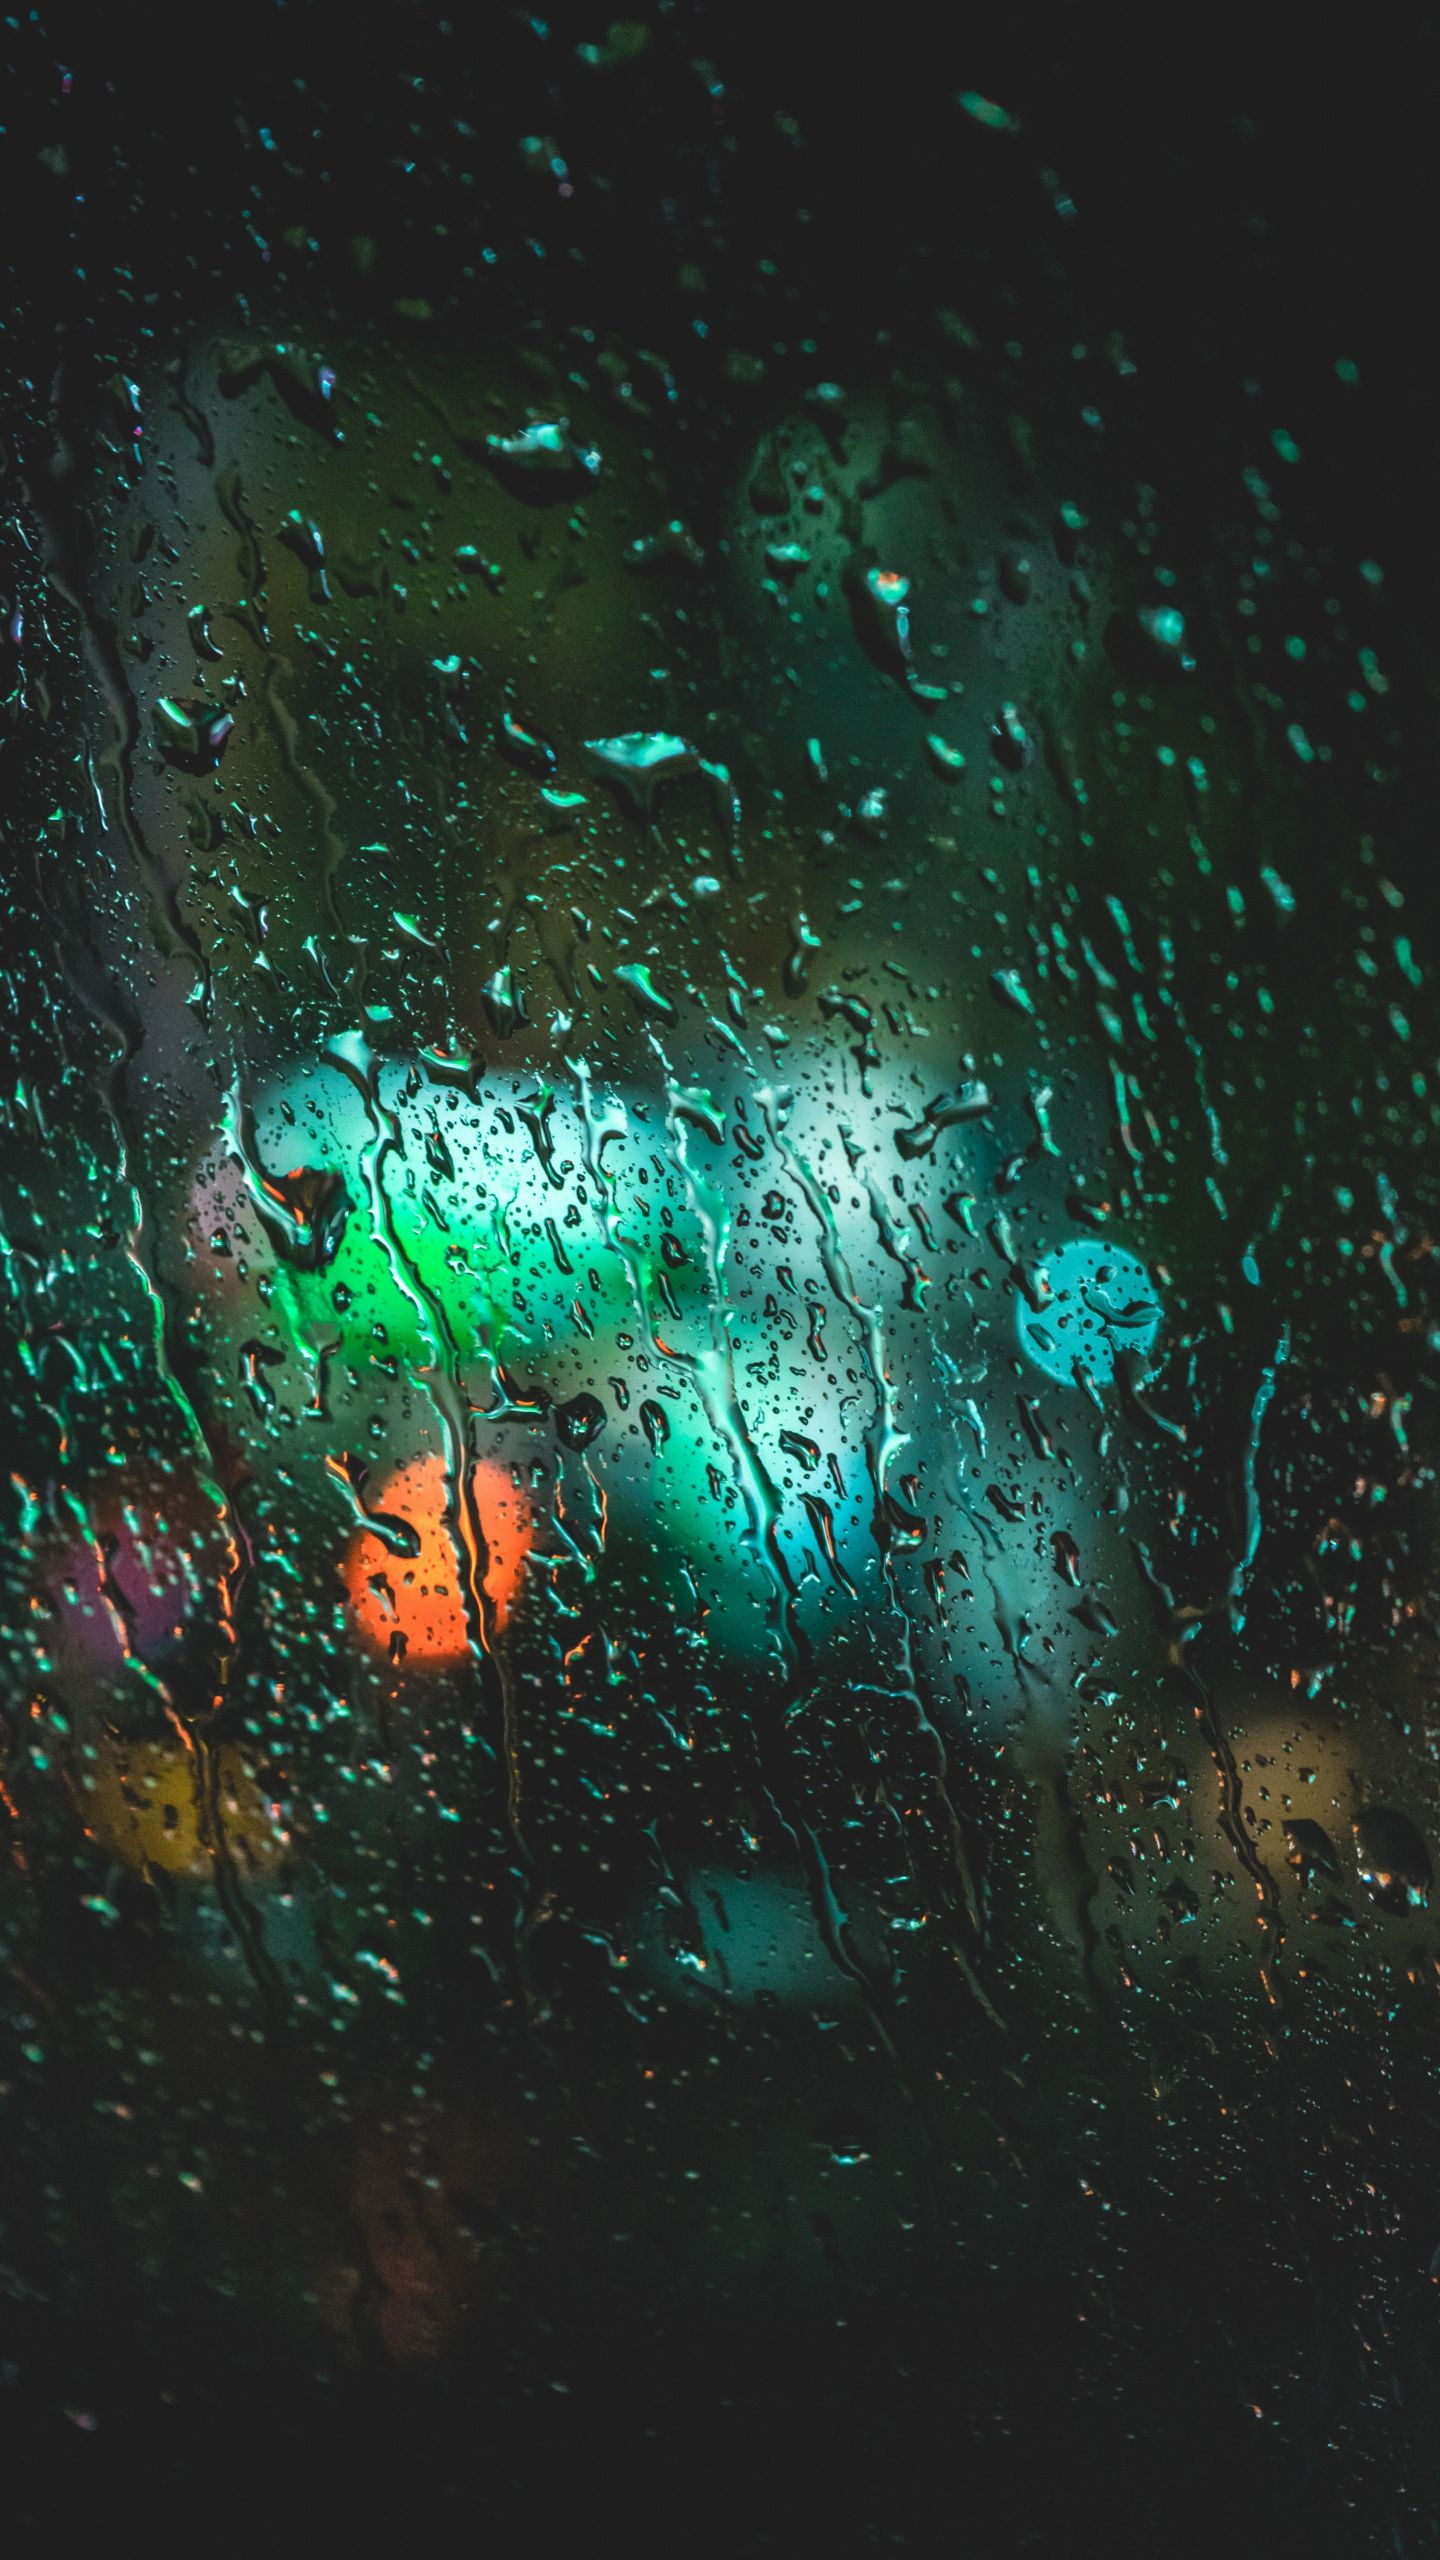 440x2560 Drops Wet Glass Surface Wallpaper Rain Wallpapers Wallpaper Wallpaper Free Download